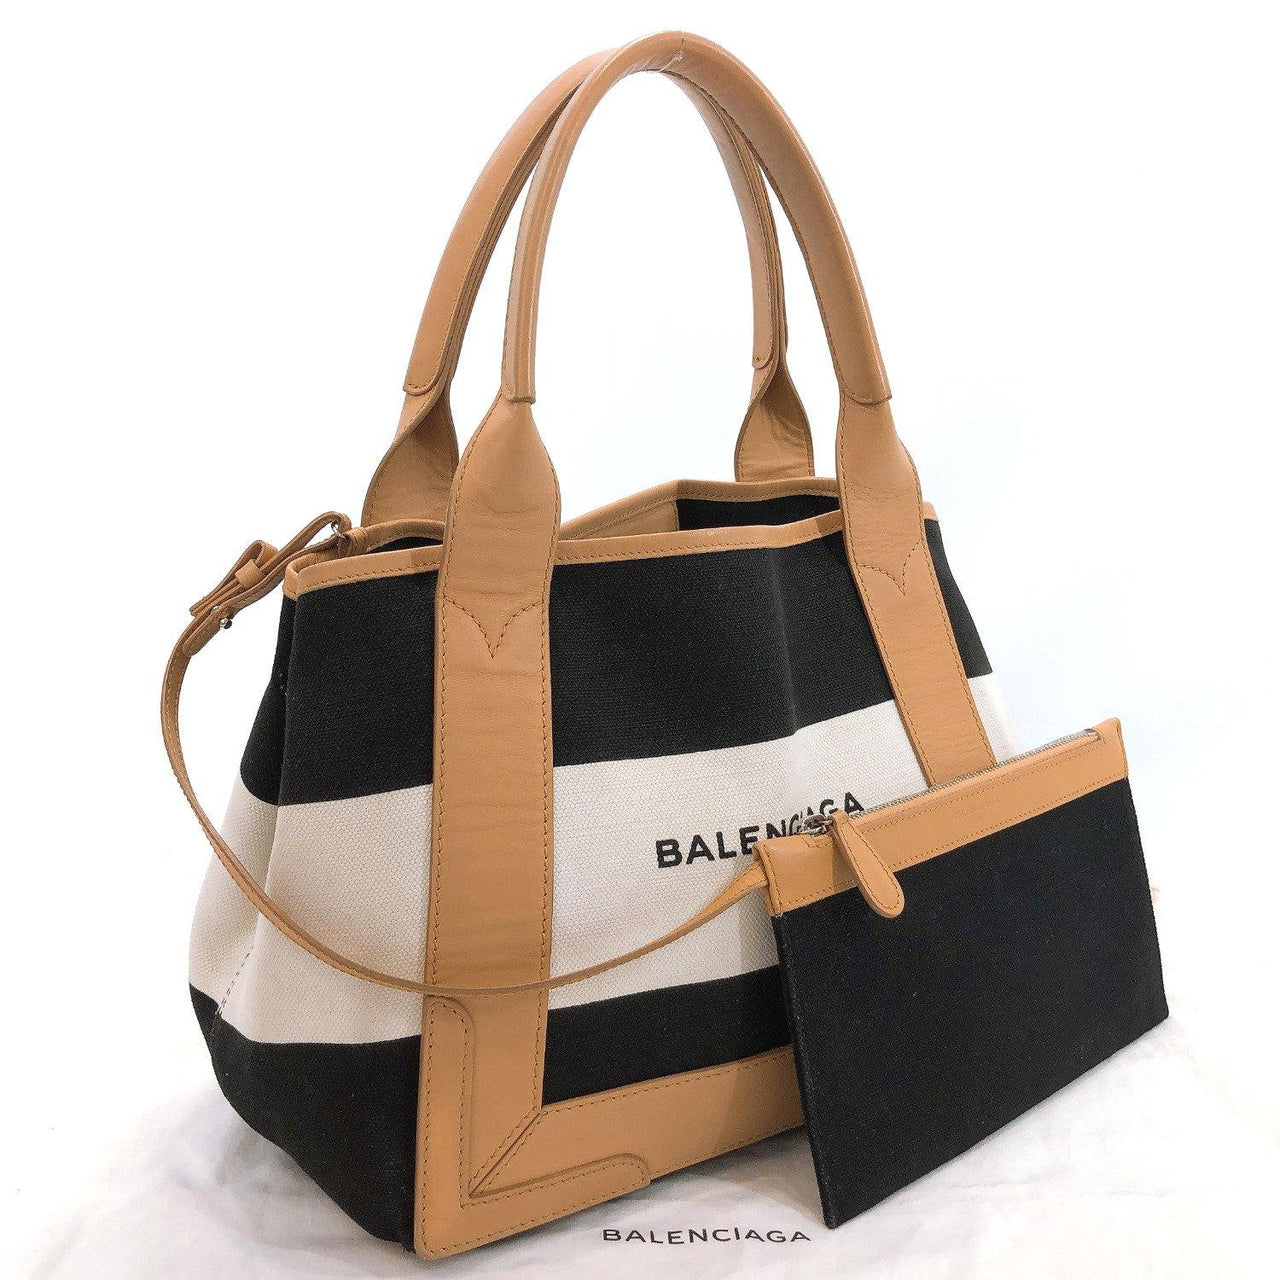 BALENCIAGA Tote Bag 339933 Navy kabas canvas/leather black Women Used - JP-BRANDS.com